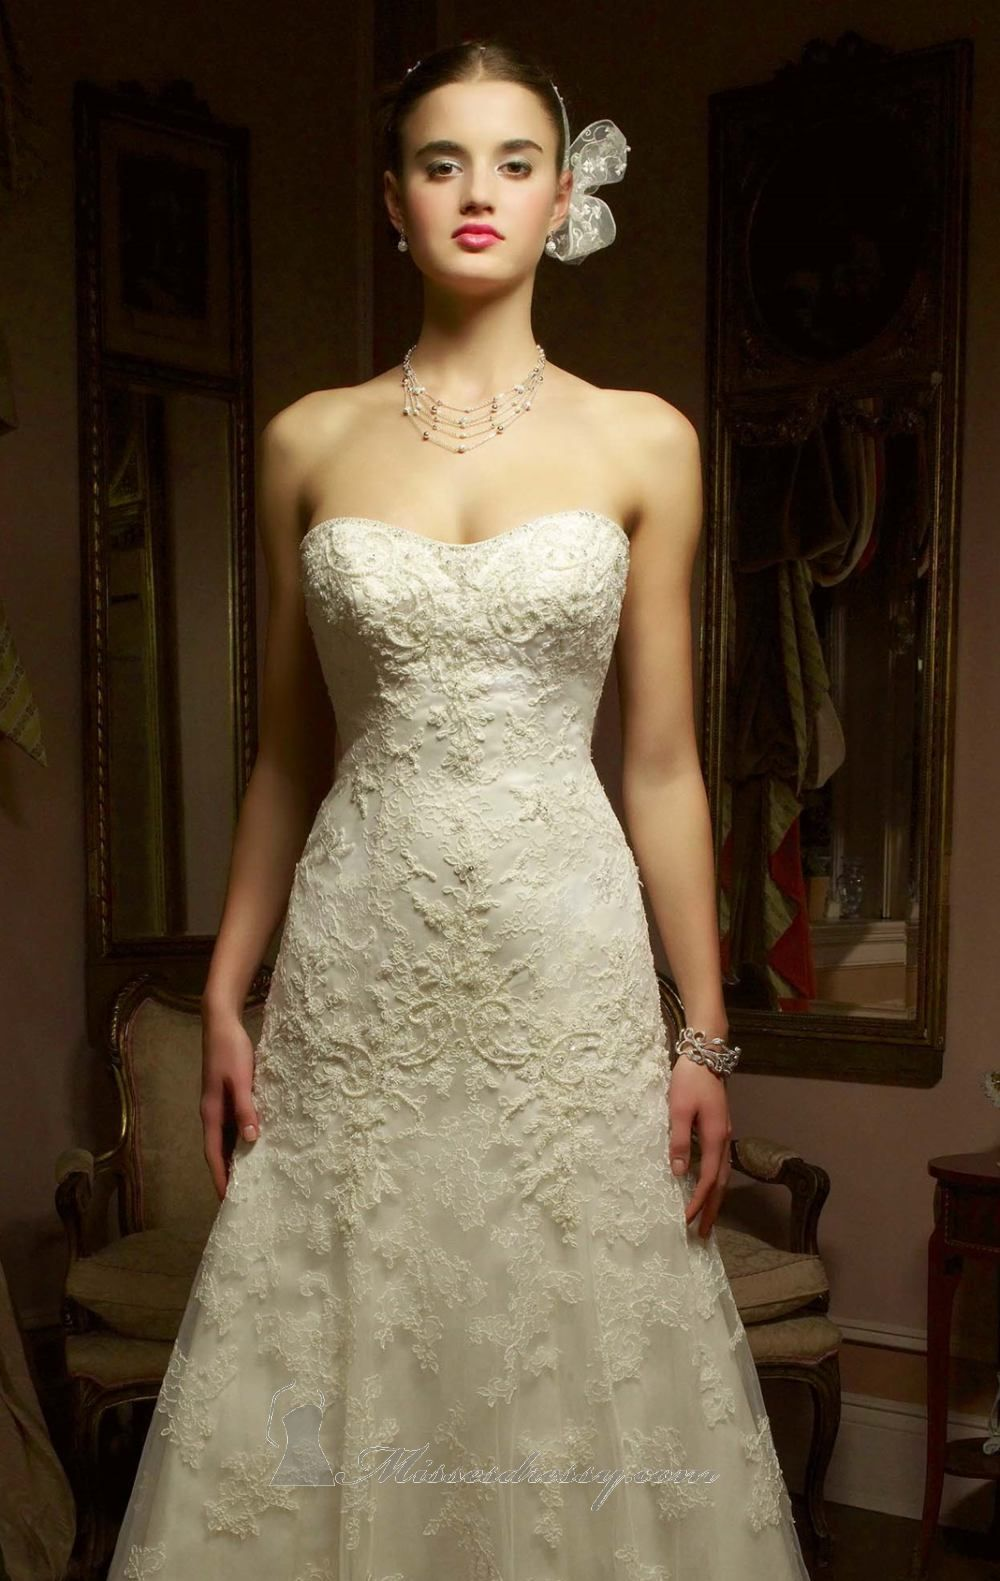 Beaded Lace Over Silky Satin Gown by Casablanca Bridal